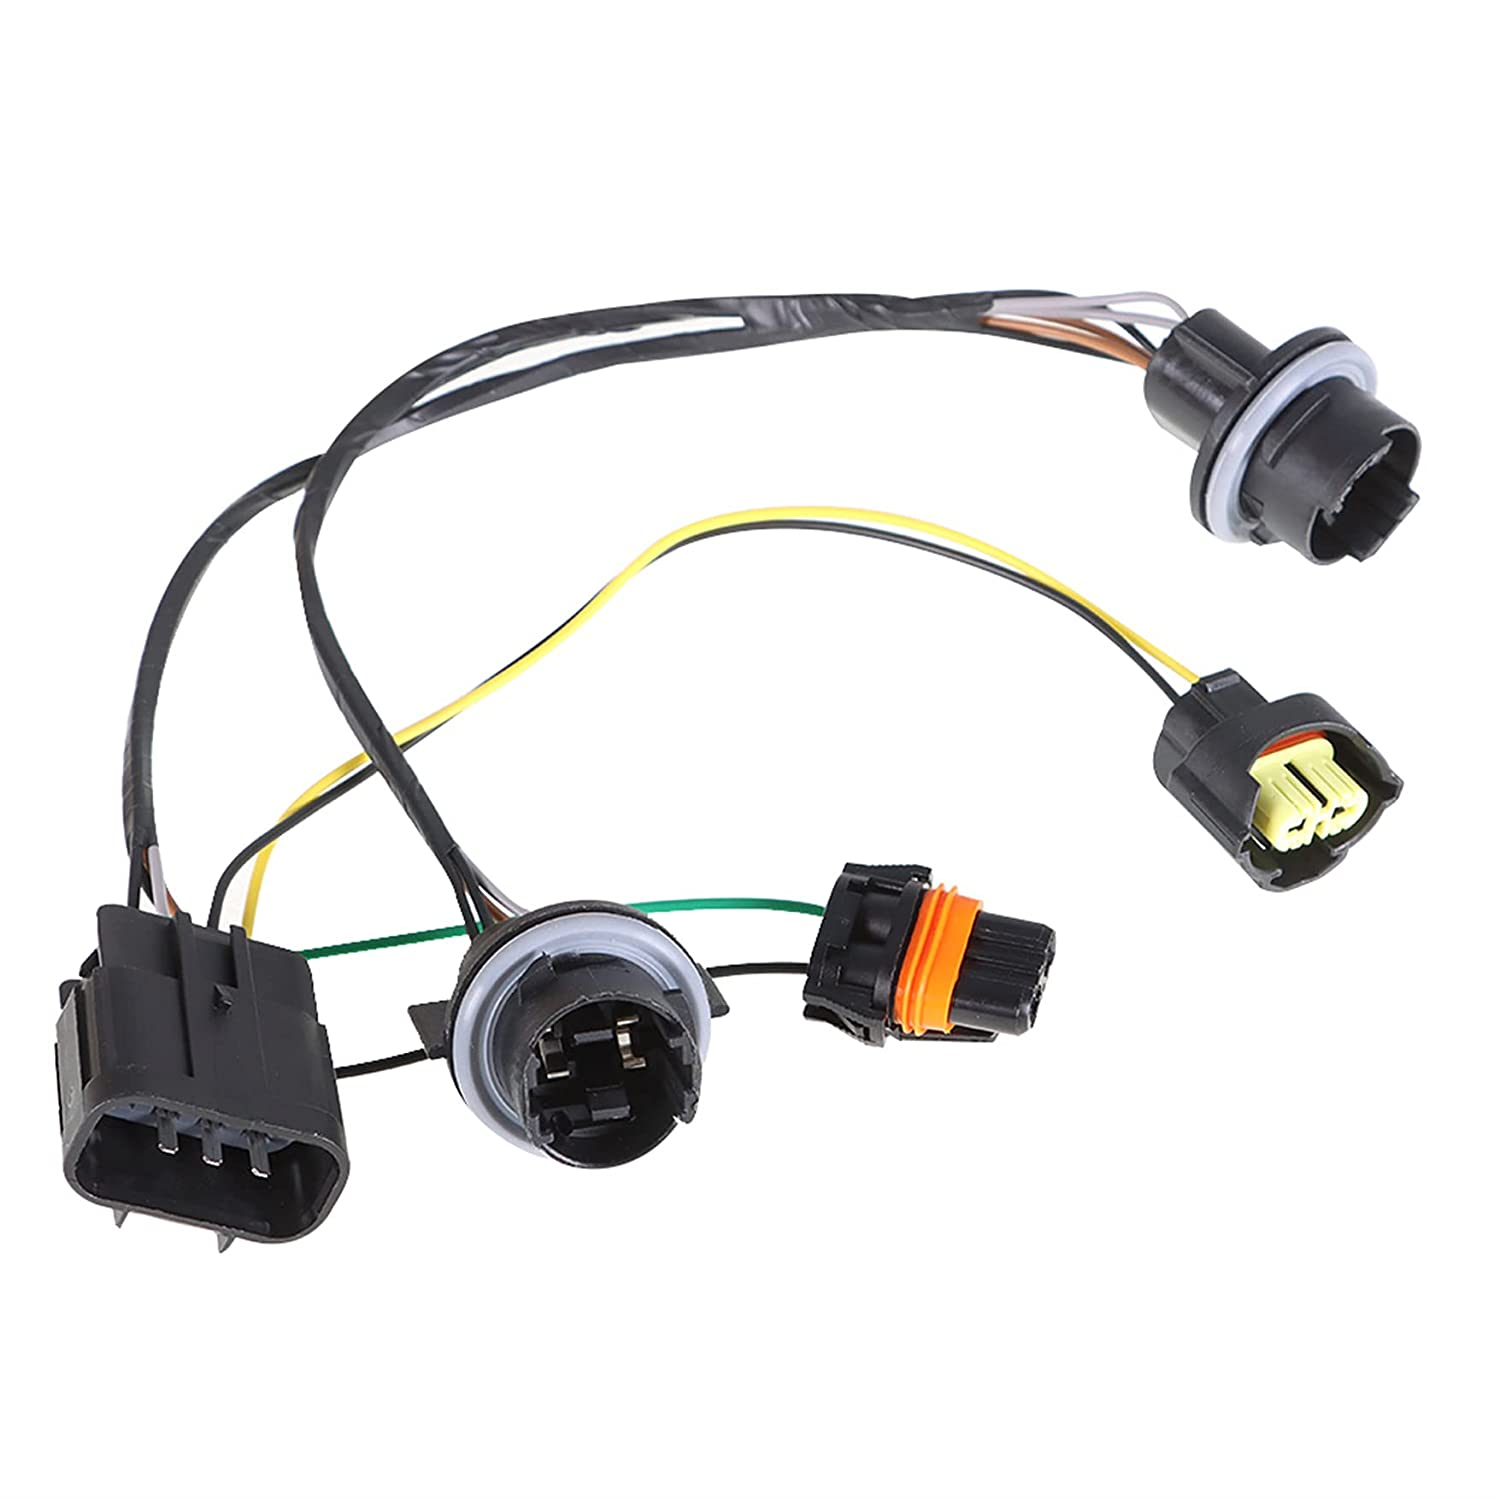 muparkt Super popular specialty store Headlight shopping Wiring Harness 2007-2013 for Chevr Replacement